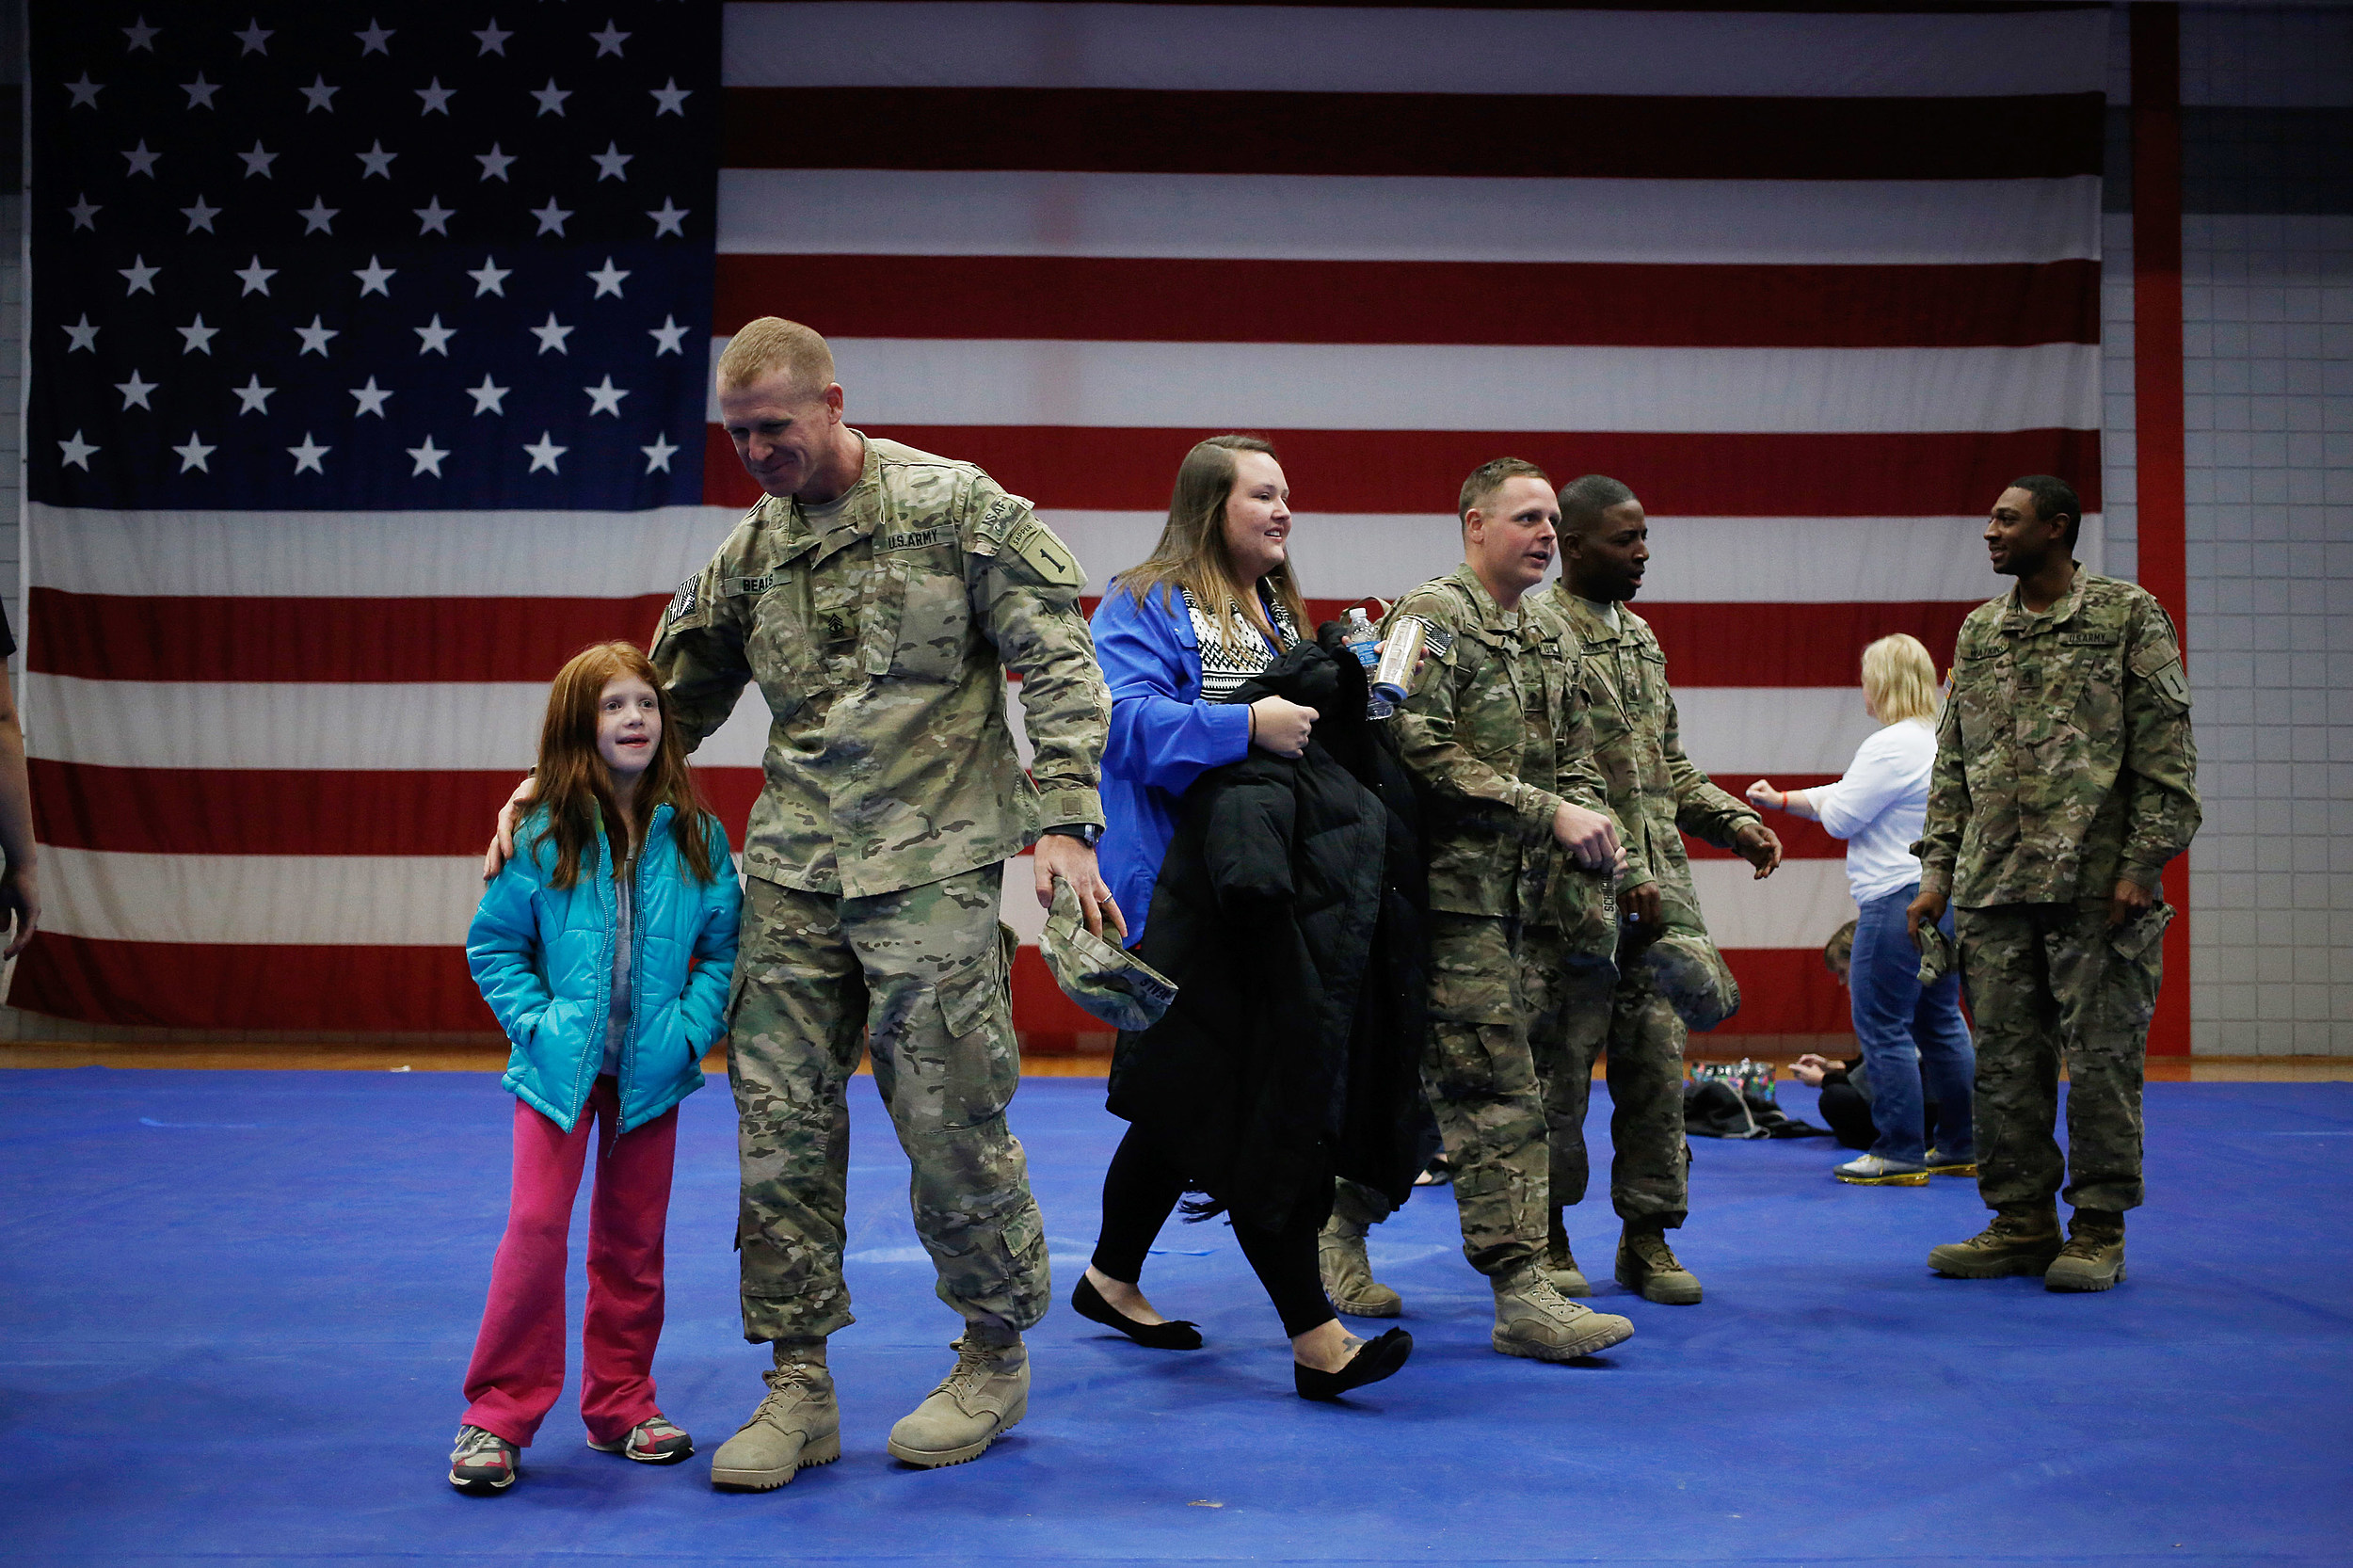 Job fair for military coming to fort bliss